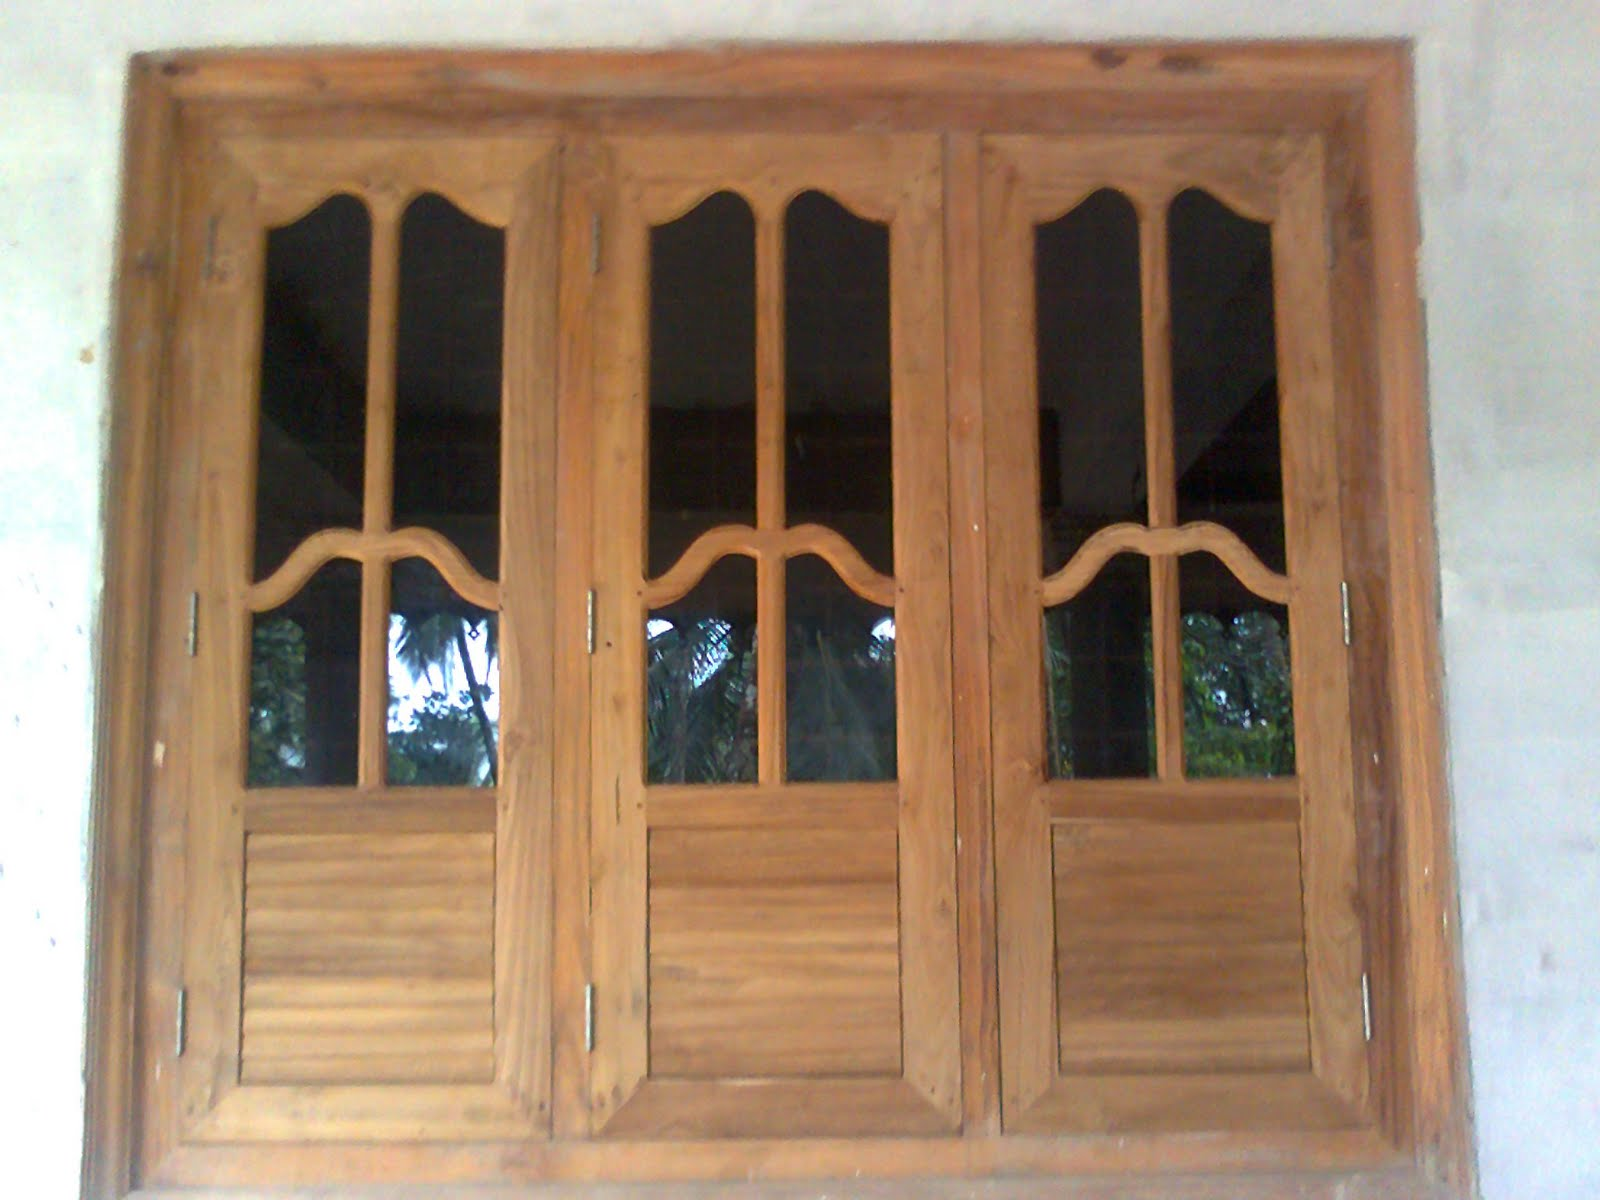 Bavas wood works wooden window doors simple designs for Window net design